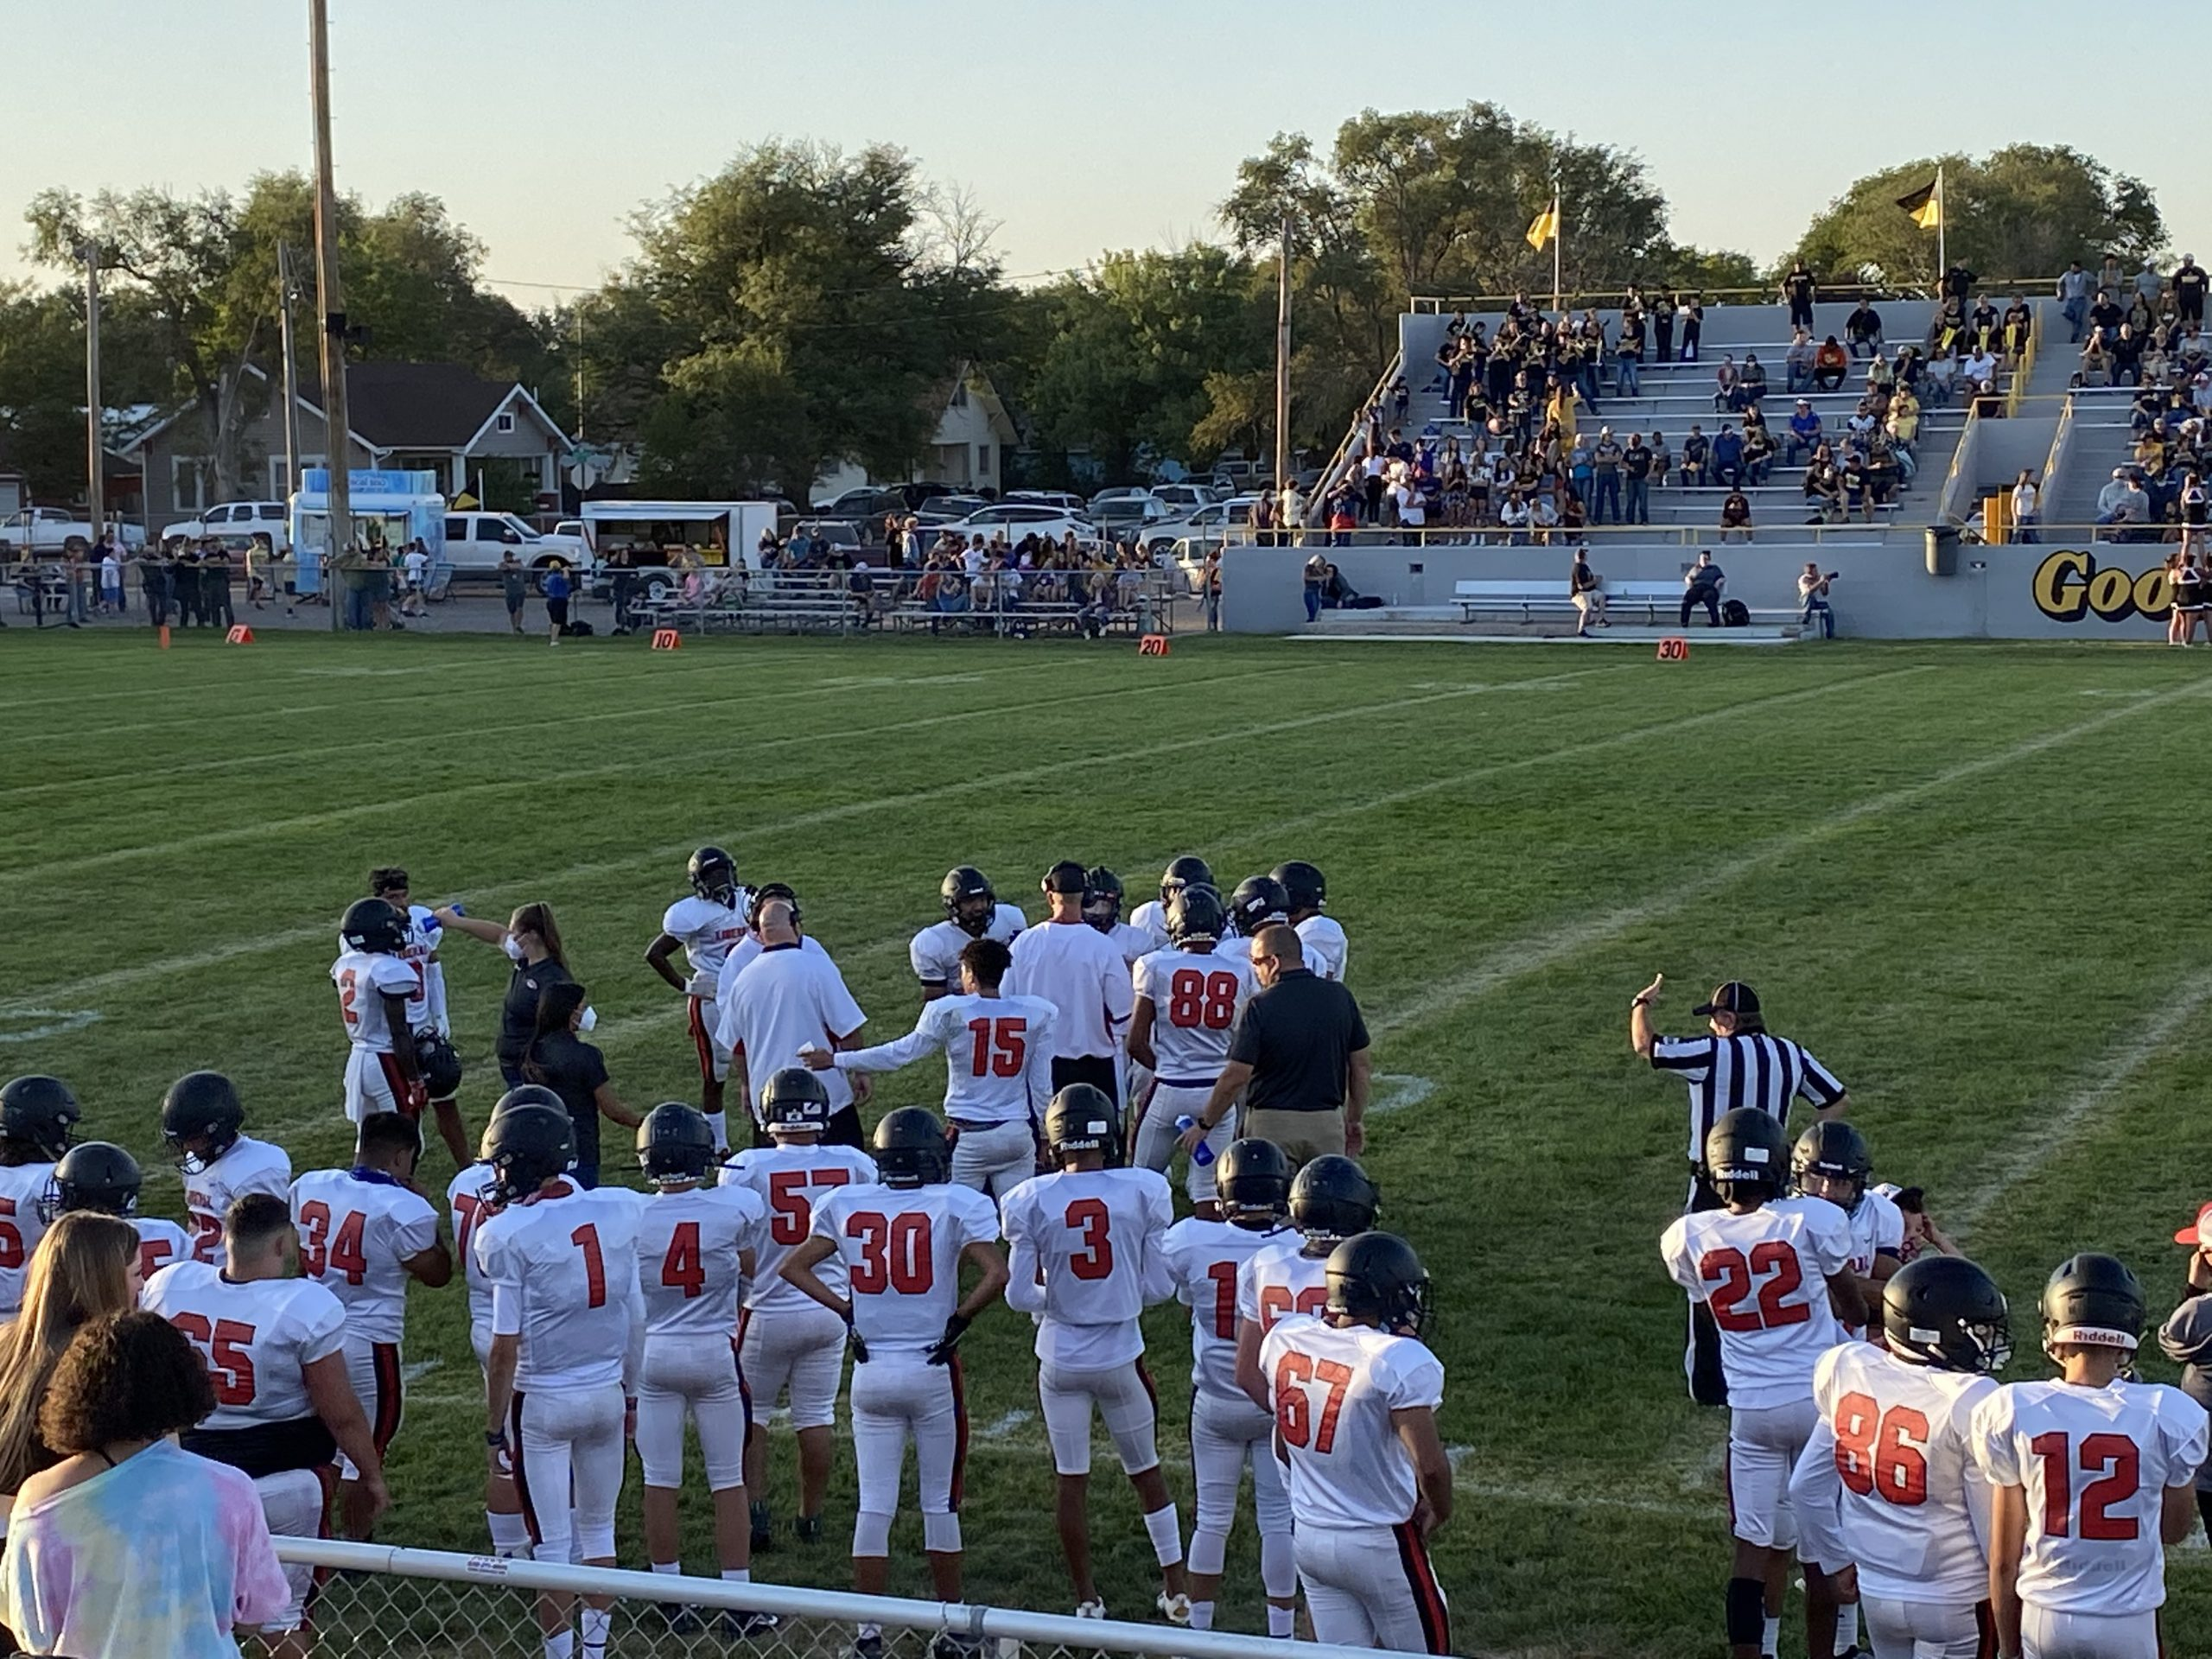 Redskins Drop Opener in Goodland